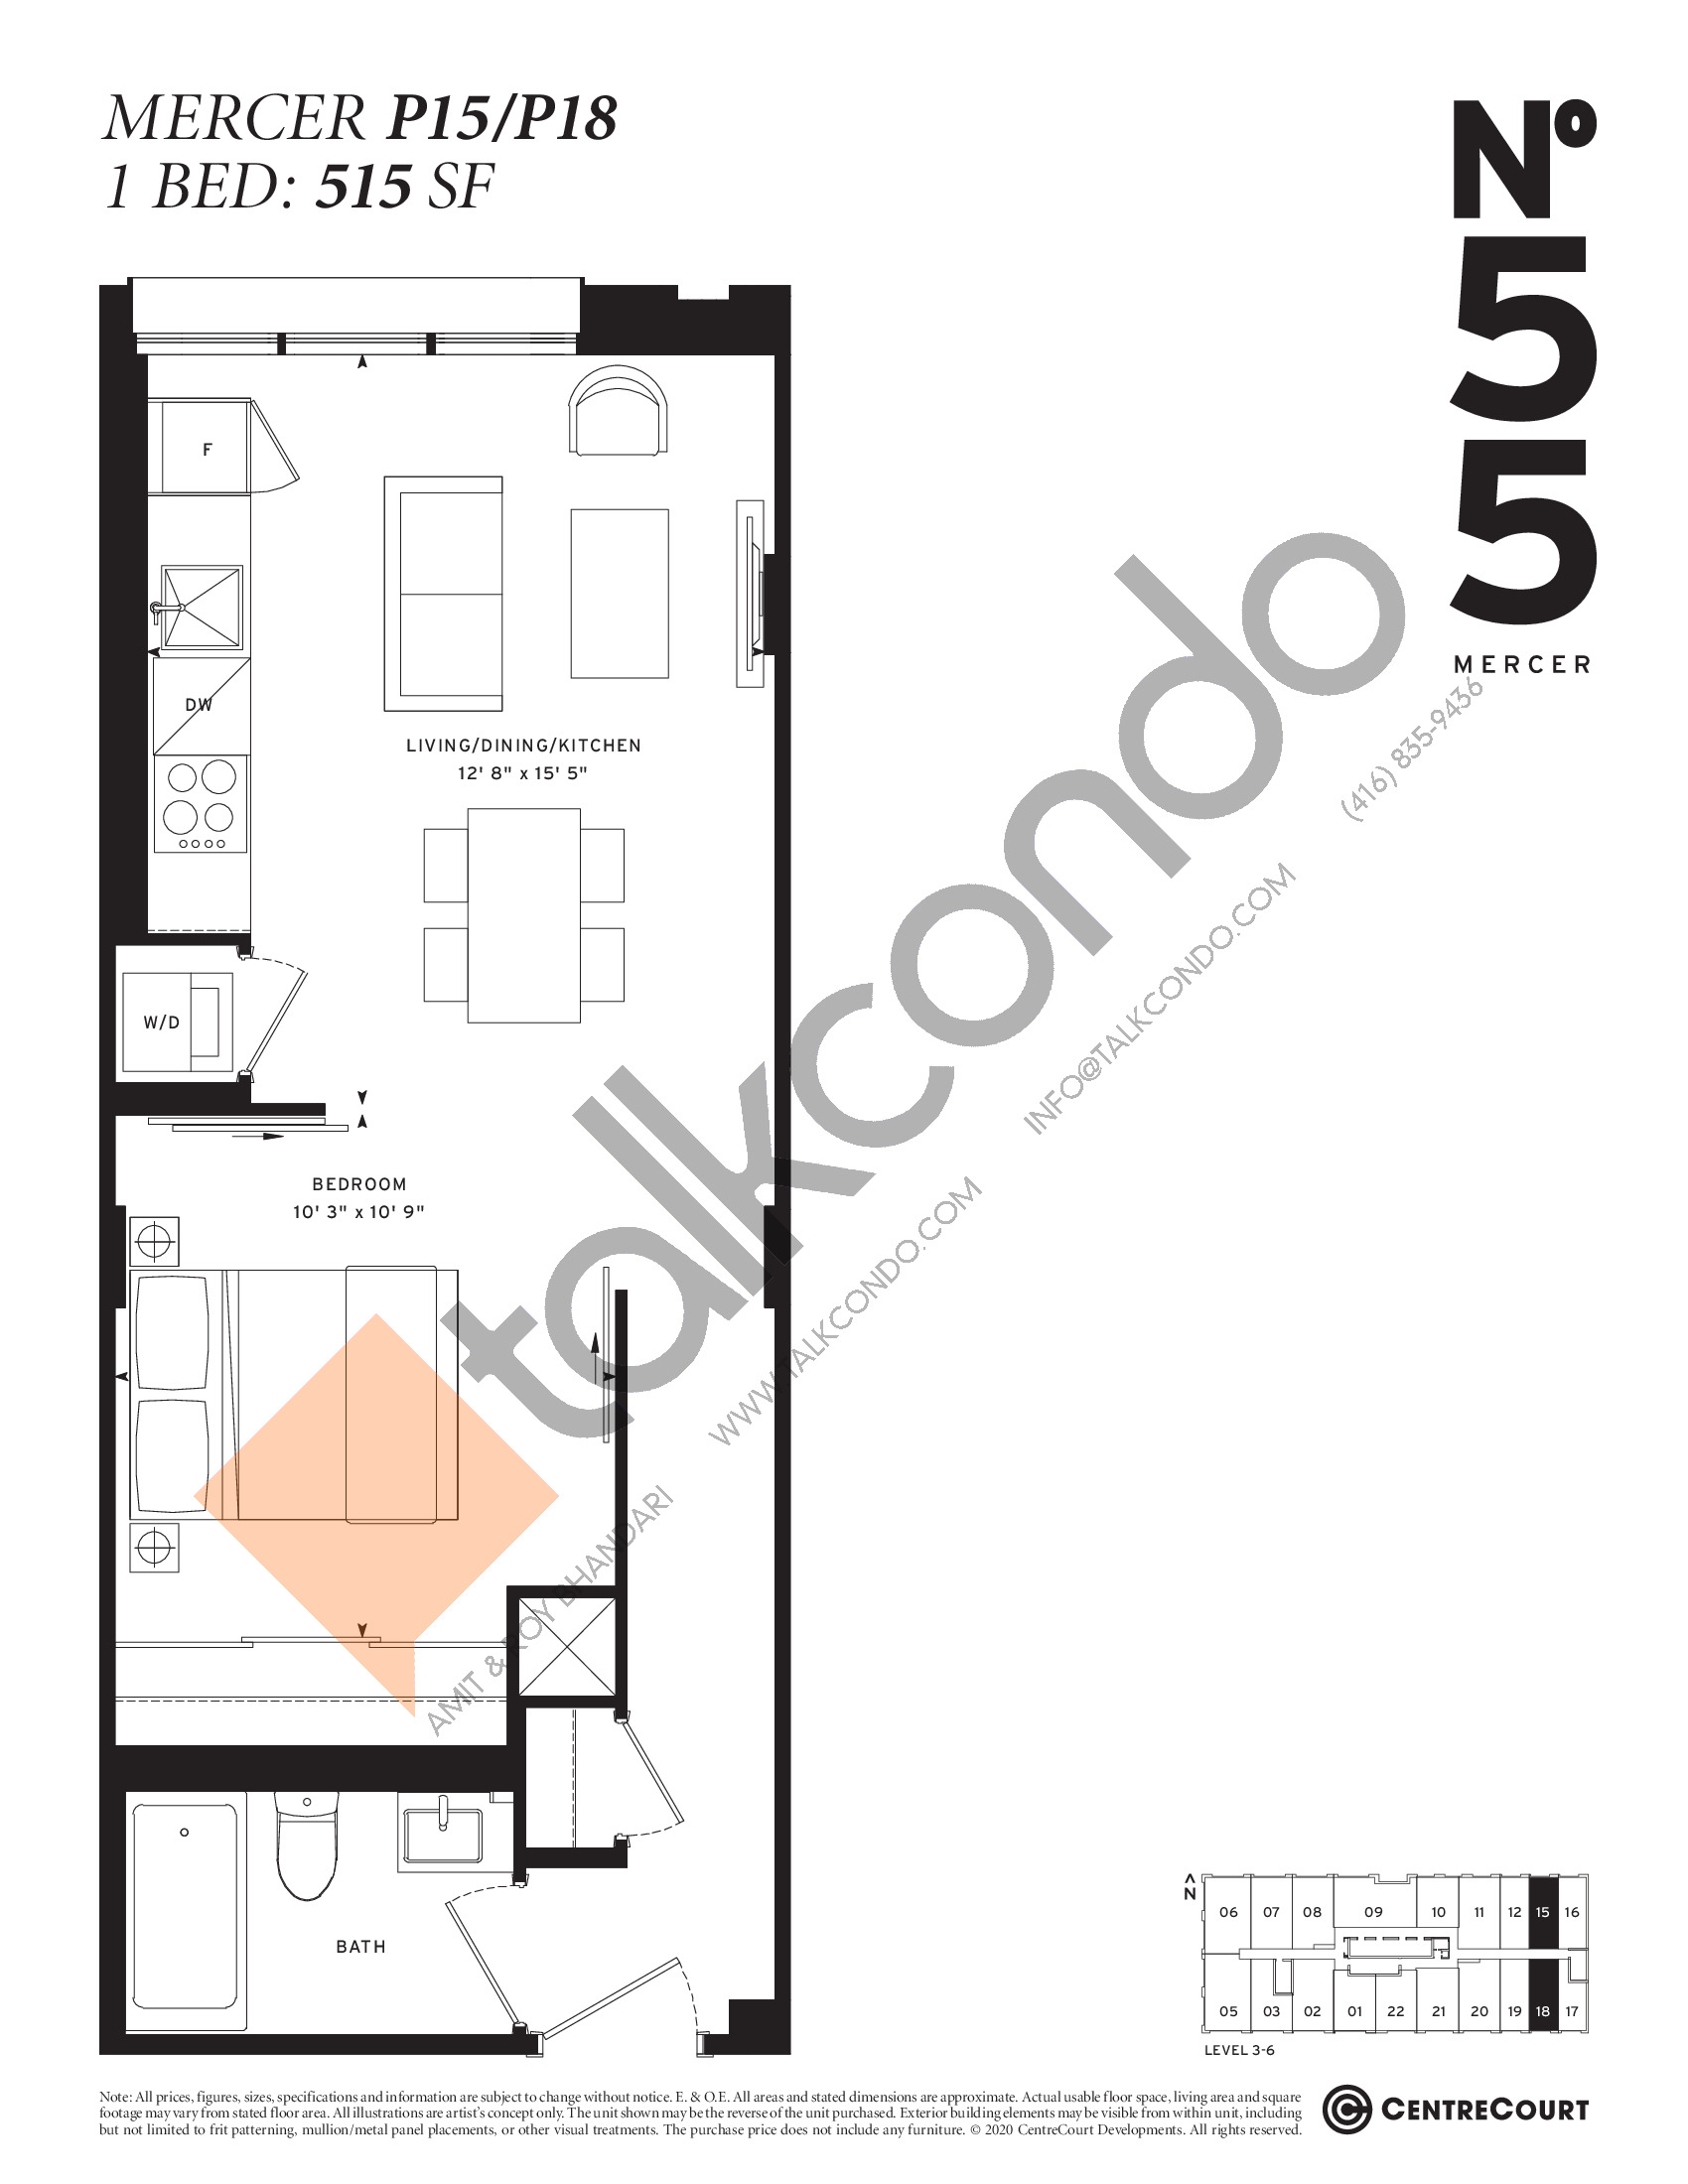 Mercer P15/P18 Floor Plan at No. 55 Mercer Condos - 515 sq.ft